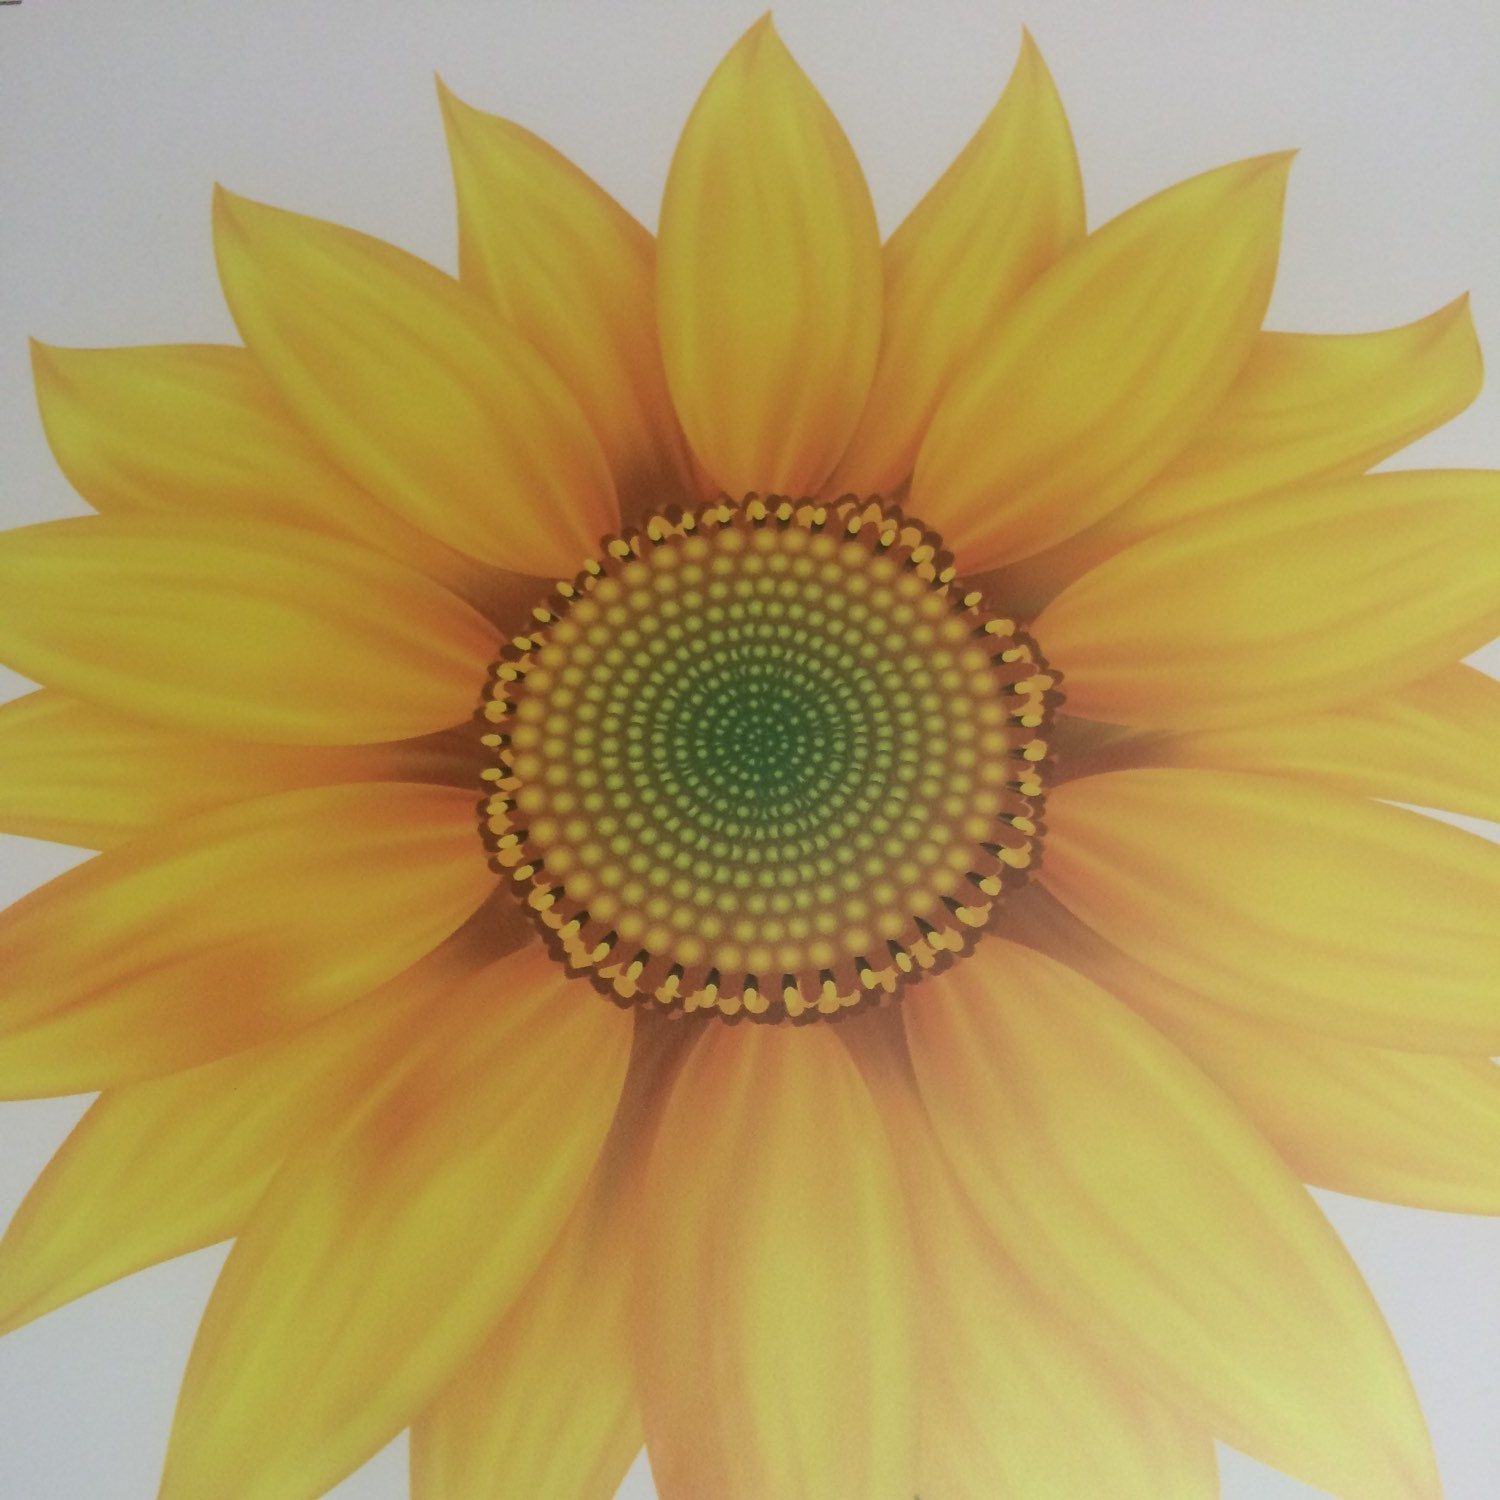 Sunflower Wall Mural Decal Sunflower Wallpaper Art Sticker Sunflower ...